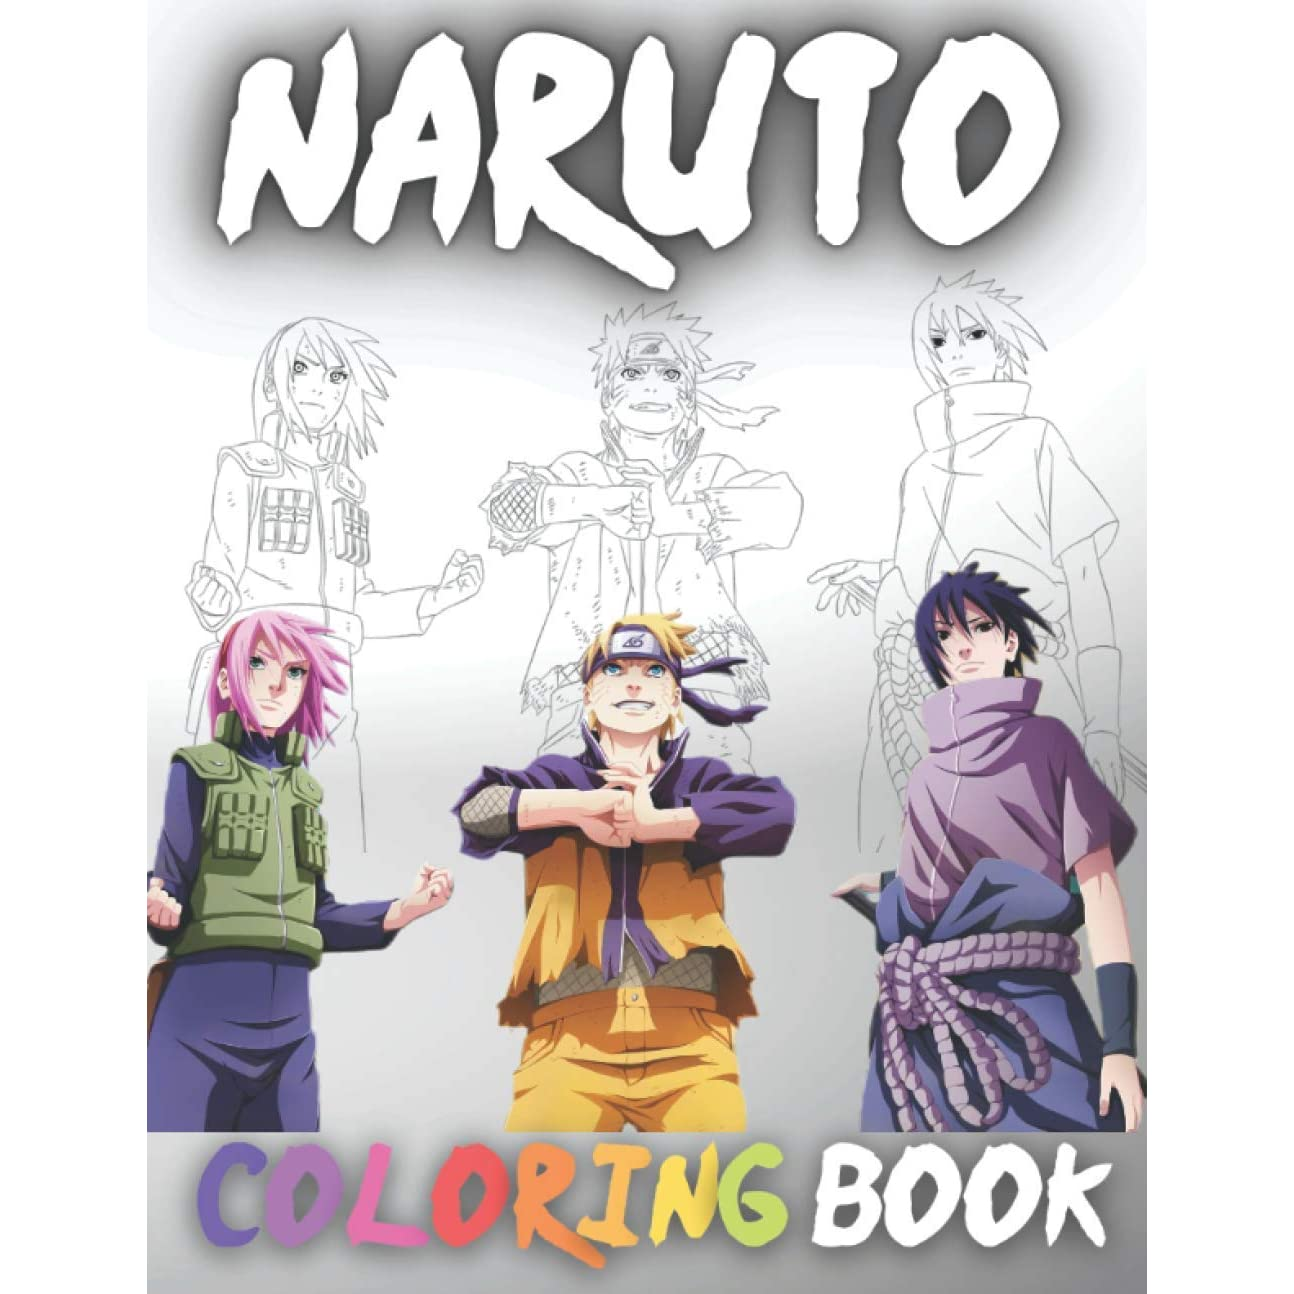 Naruto Coloring Book Naruto Shippuden Coloring Book Anime For Adults Teens And Kids 35 Hd Unique Illustration To Color Of Naruto Sasuke Sakura And Others By Coloring Vip Books Pro